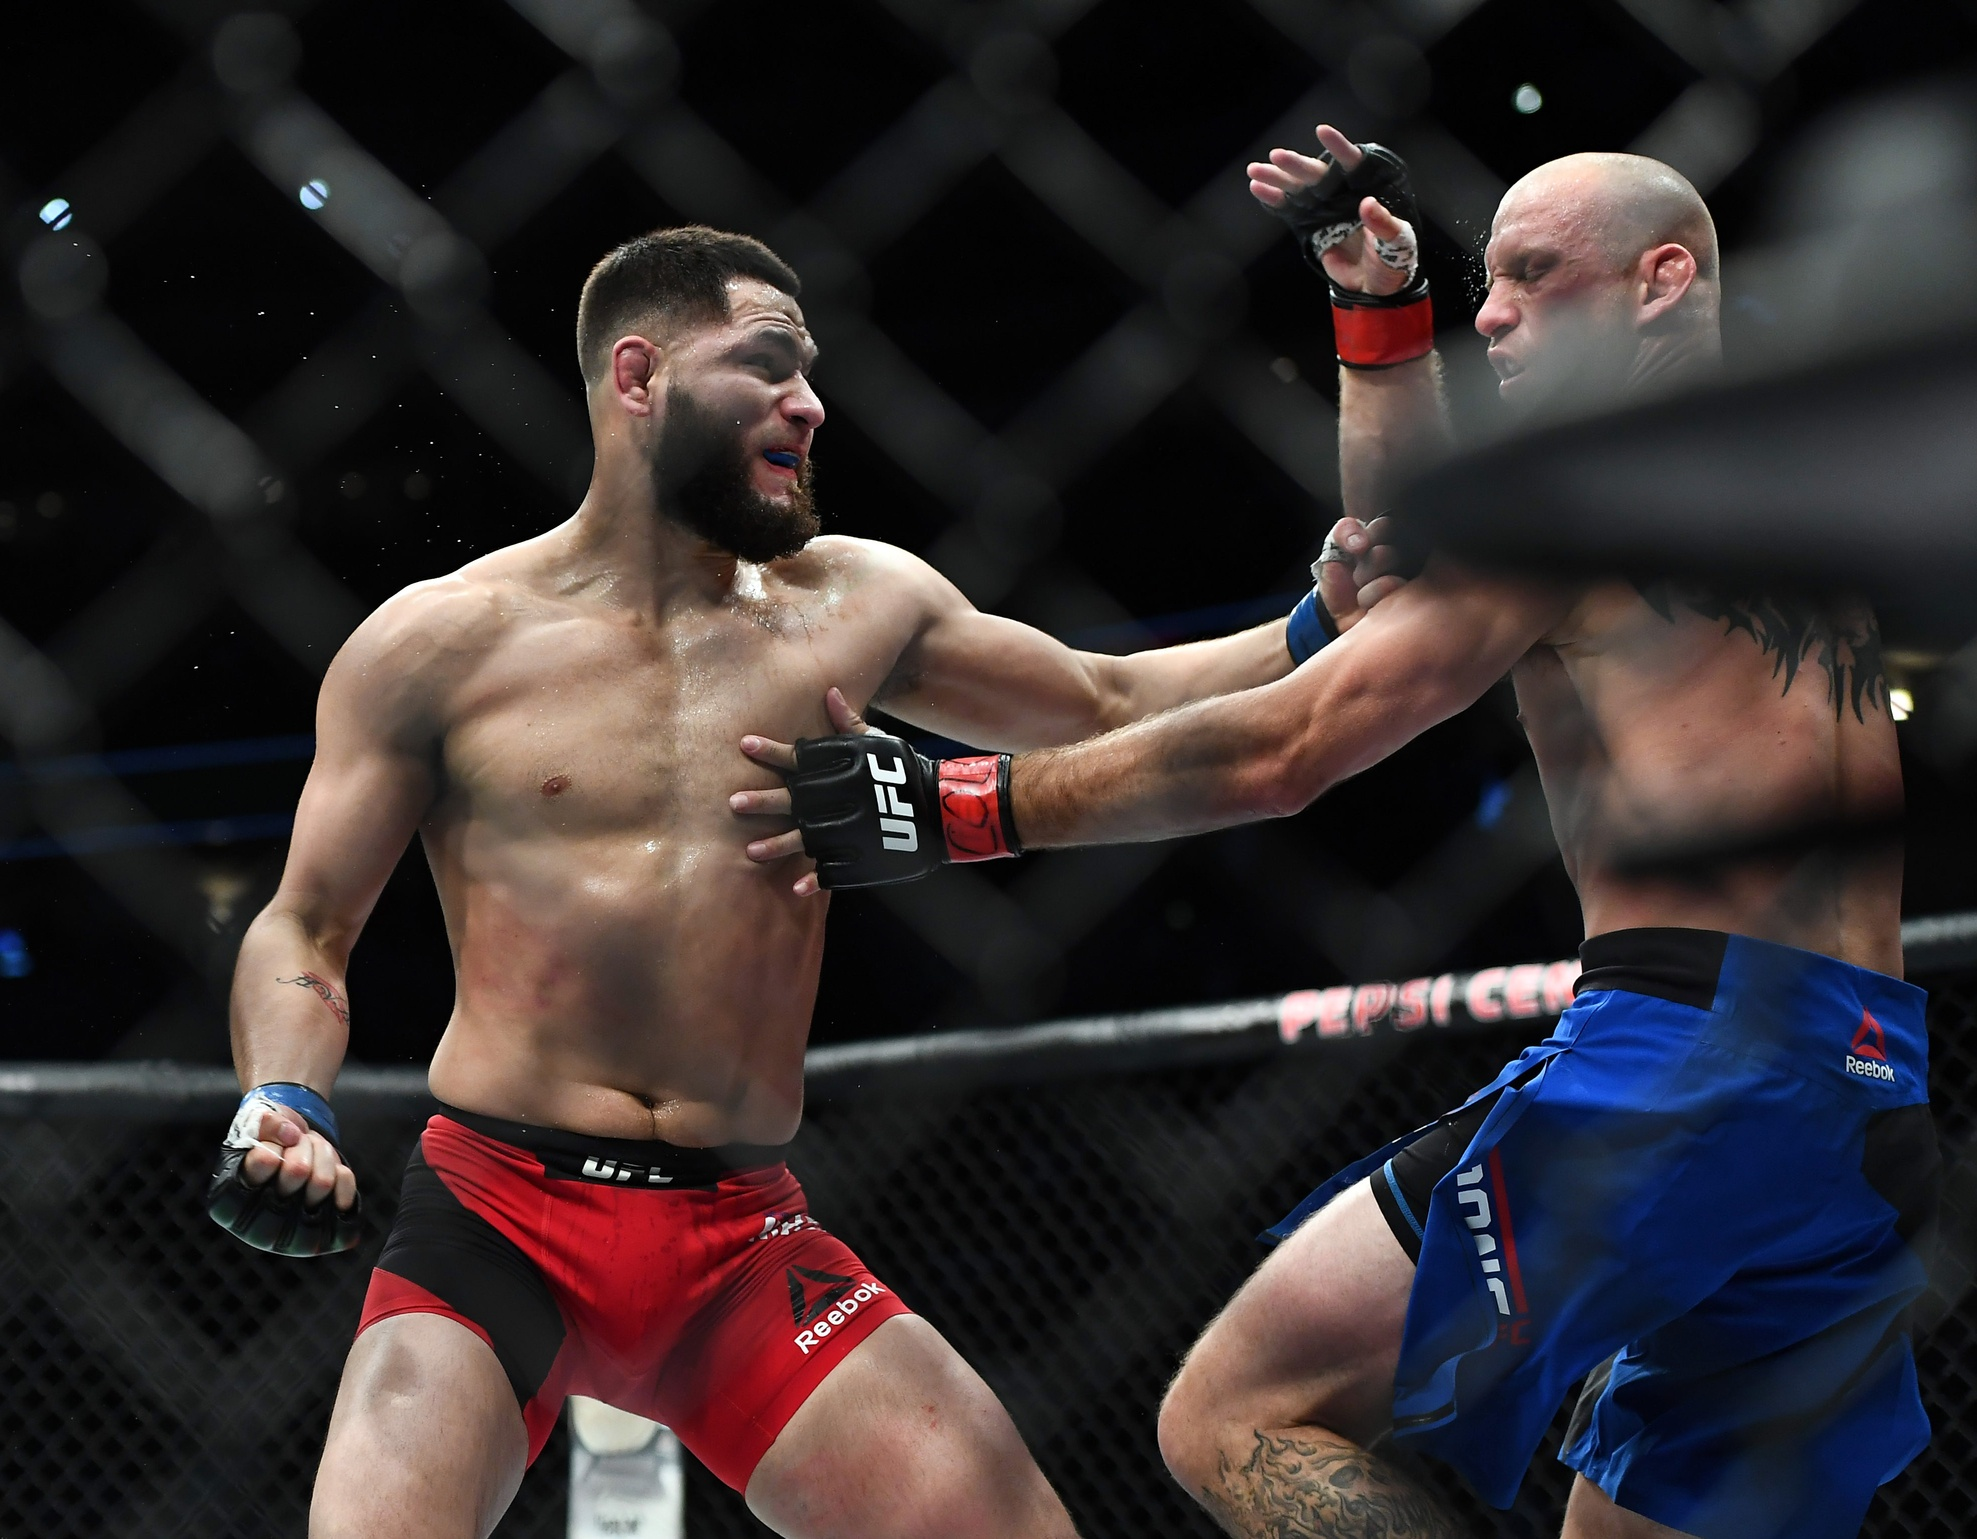 Jorge Masvidal: From The Streets To The SpotlightFloCombat Prospect Of The Week: Uros JurisicBen Askren Says It's 'Pretty Obvious' He's In Jorge Masvidal's HeadTop Turtle MMA Podcast: Top 5 Fights Left In 2019Cowboy Fight Series 2: Watch Four Title Fights Live On FloCombatLuis Pena's Newfound Philosophy: Have Fun Hitting People In The FaceAnthony Rocco Martin: I Can 'Really Hurt' Demian Maia At UFC On ESPN 3Top Turtle MMA Podcast Fight Flashback: Georges St-Pierre vs. Karo ParisyanFamily, farming, fighting: UFC's Greenville's Bryan Barberena Balances AllTop Turtle MMA: UFC Greenville Breakdown, Best Facial Hair in MMA, MoreWait, Kali Robbins Likes Unfrosted Pop Tarts?